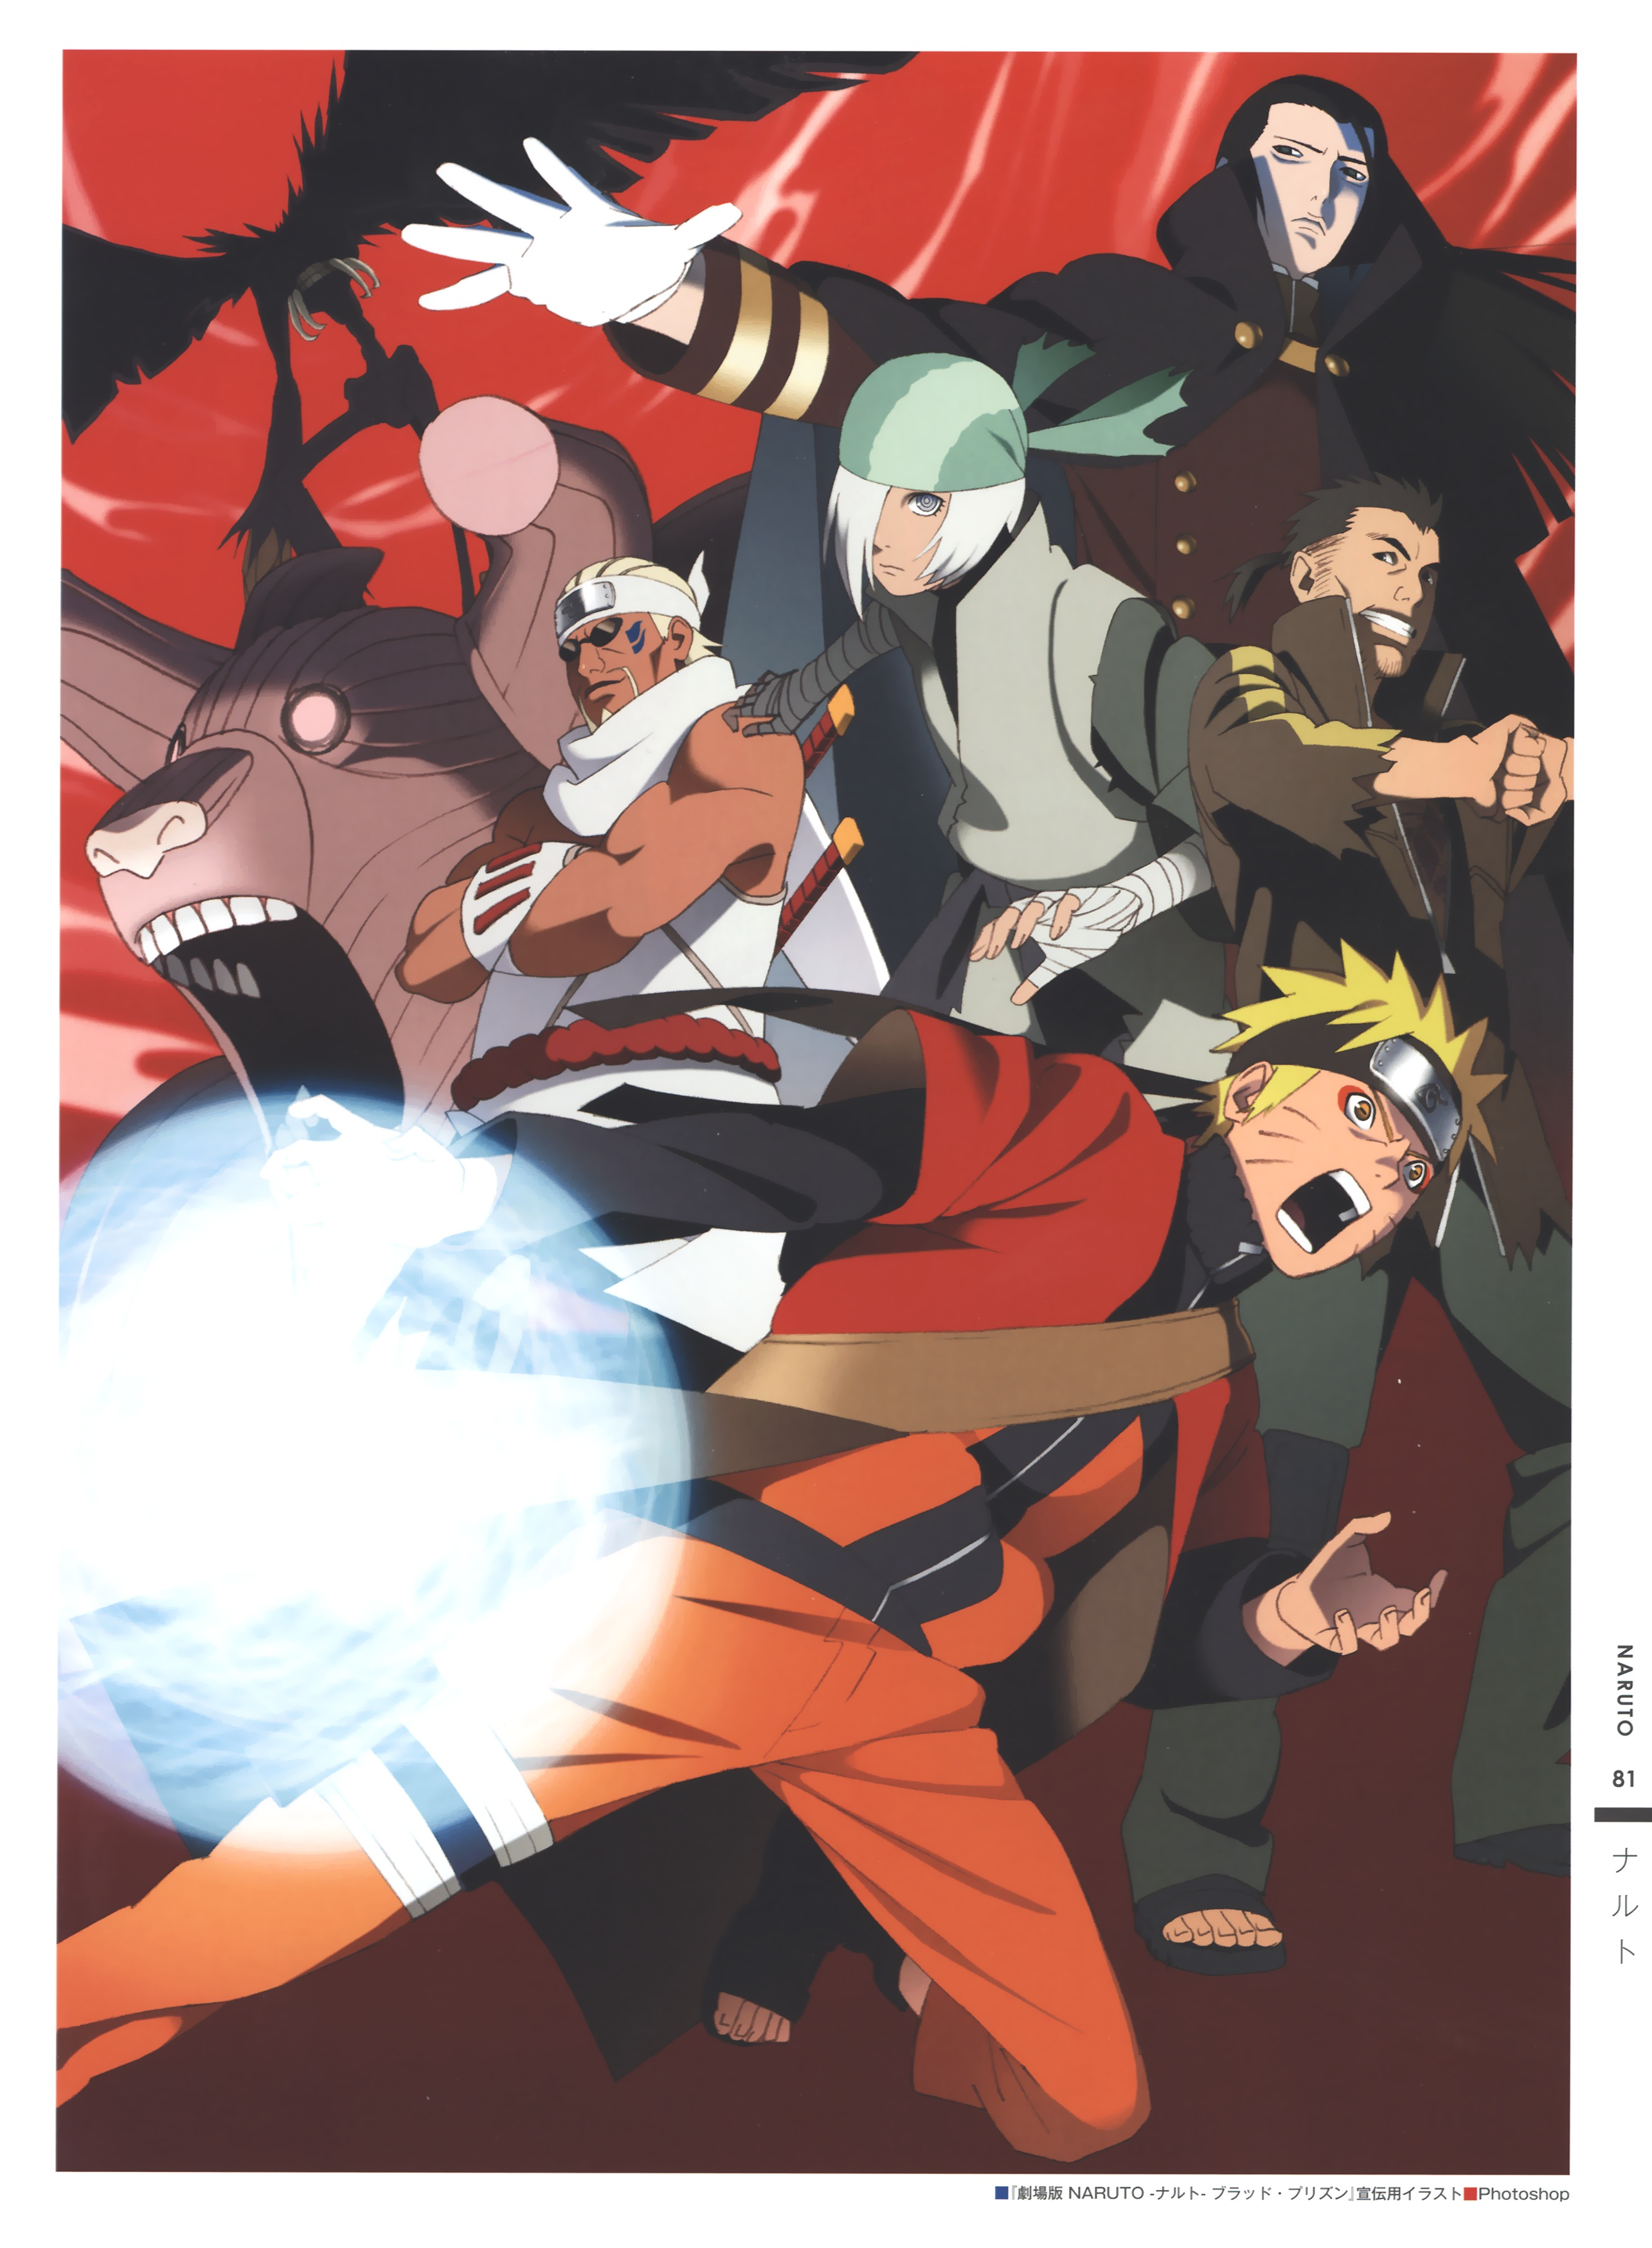 Naruto Shippuden the Movie Blood Prison Art with Sage Naruto, Bee, and Others